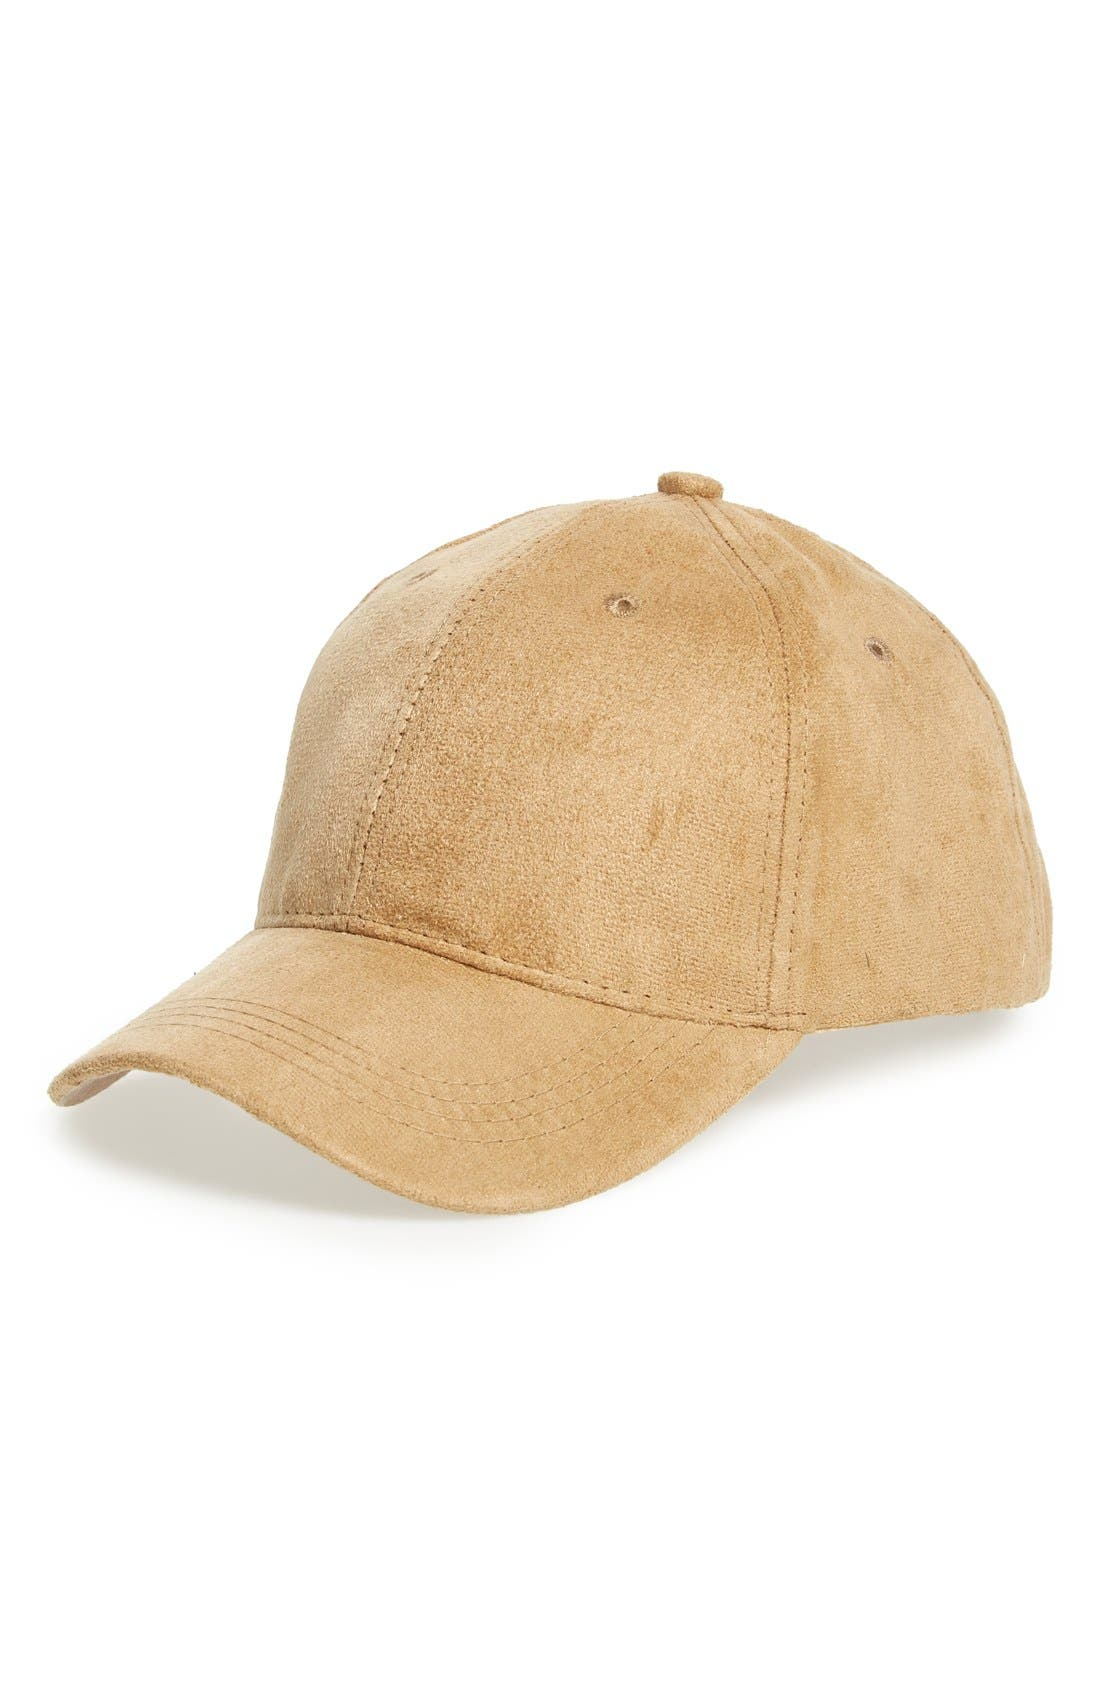 Faux Suede Ball Cap,                         Main,                         color, Tan